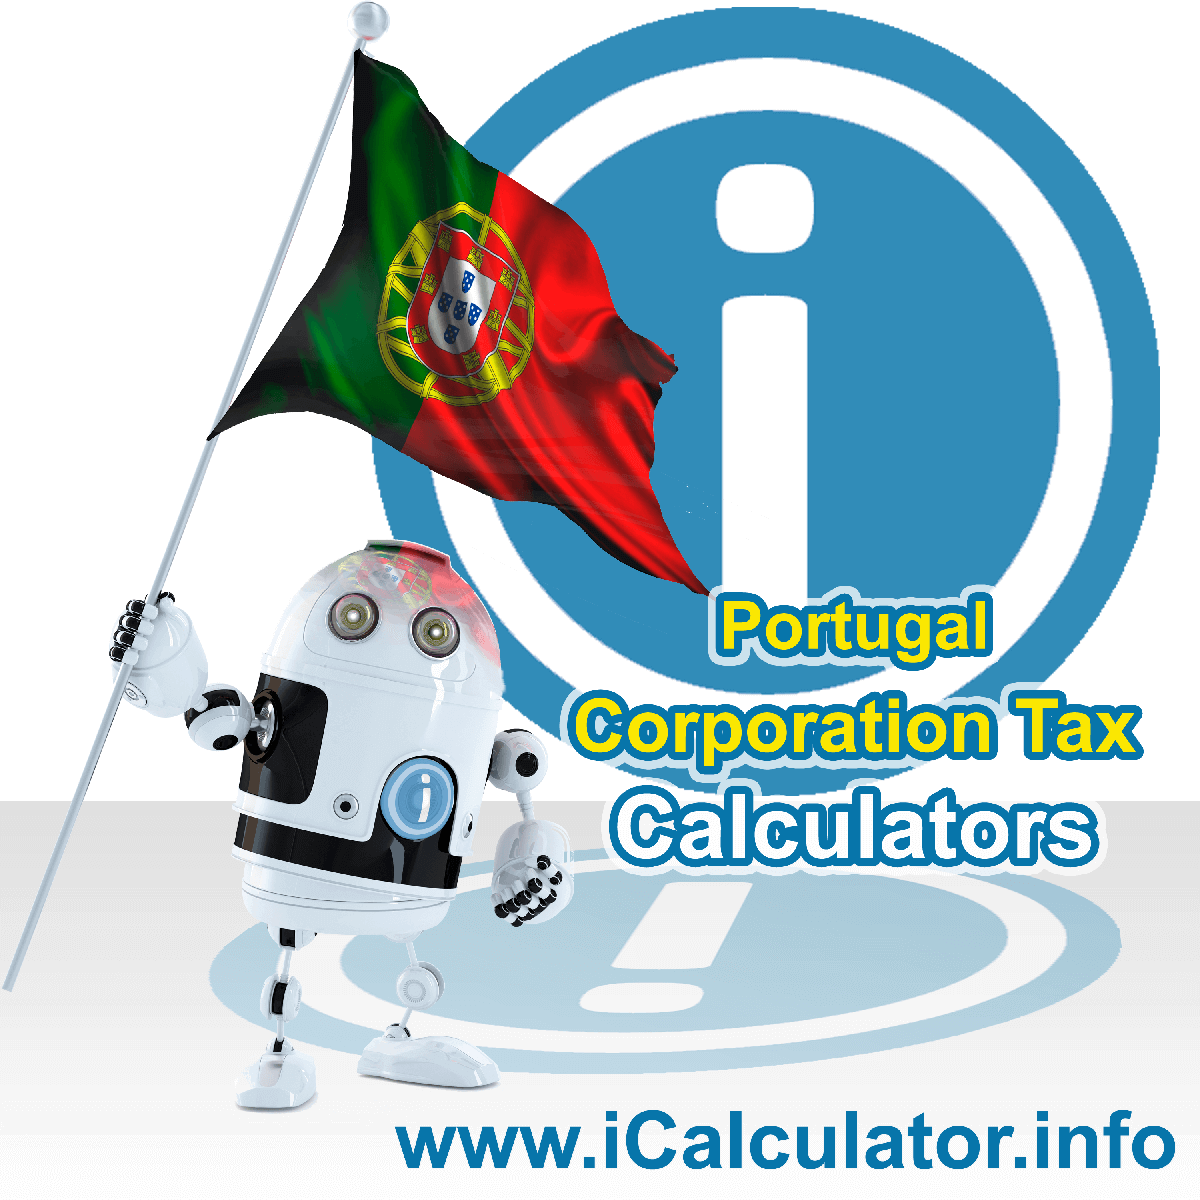 Portugal Corporation Tax Calculator. This image shows the Portugal flag and information relating to the corporation tax rate formula used for calculating Corporation Tax in Portugal using the Portugal Corporation Tax Calculator in 2020